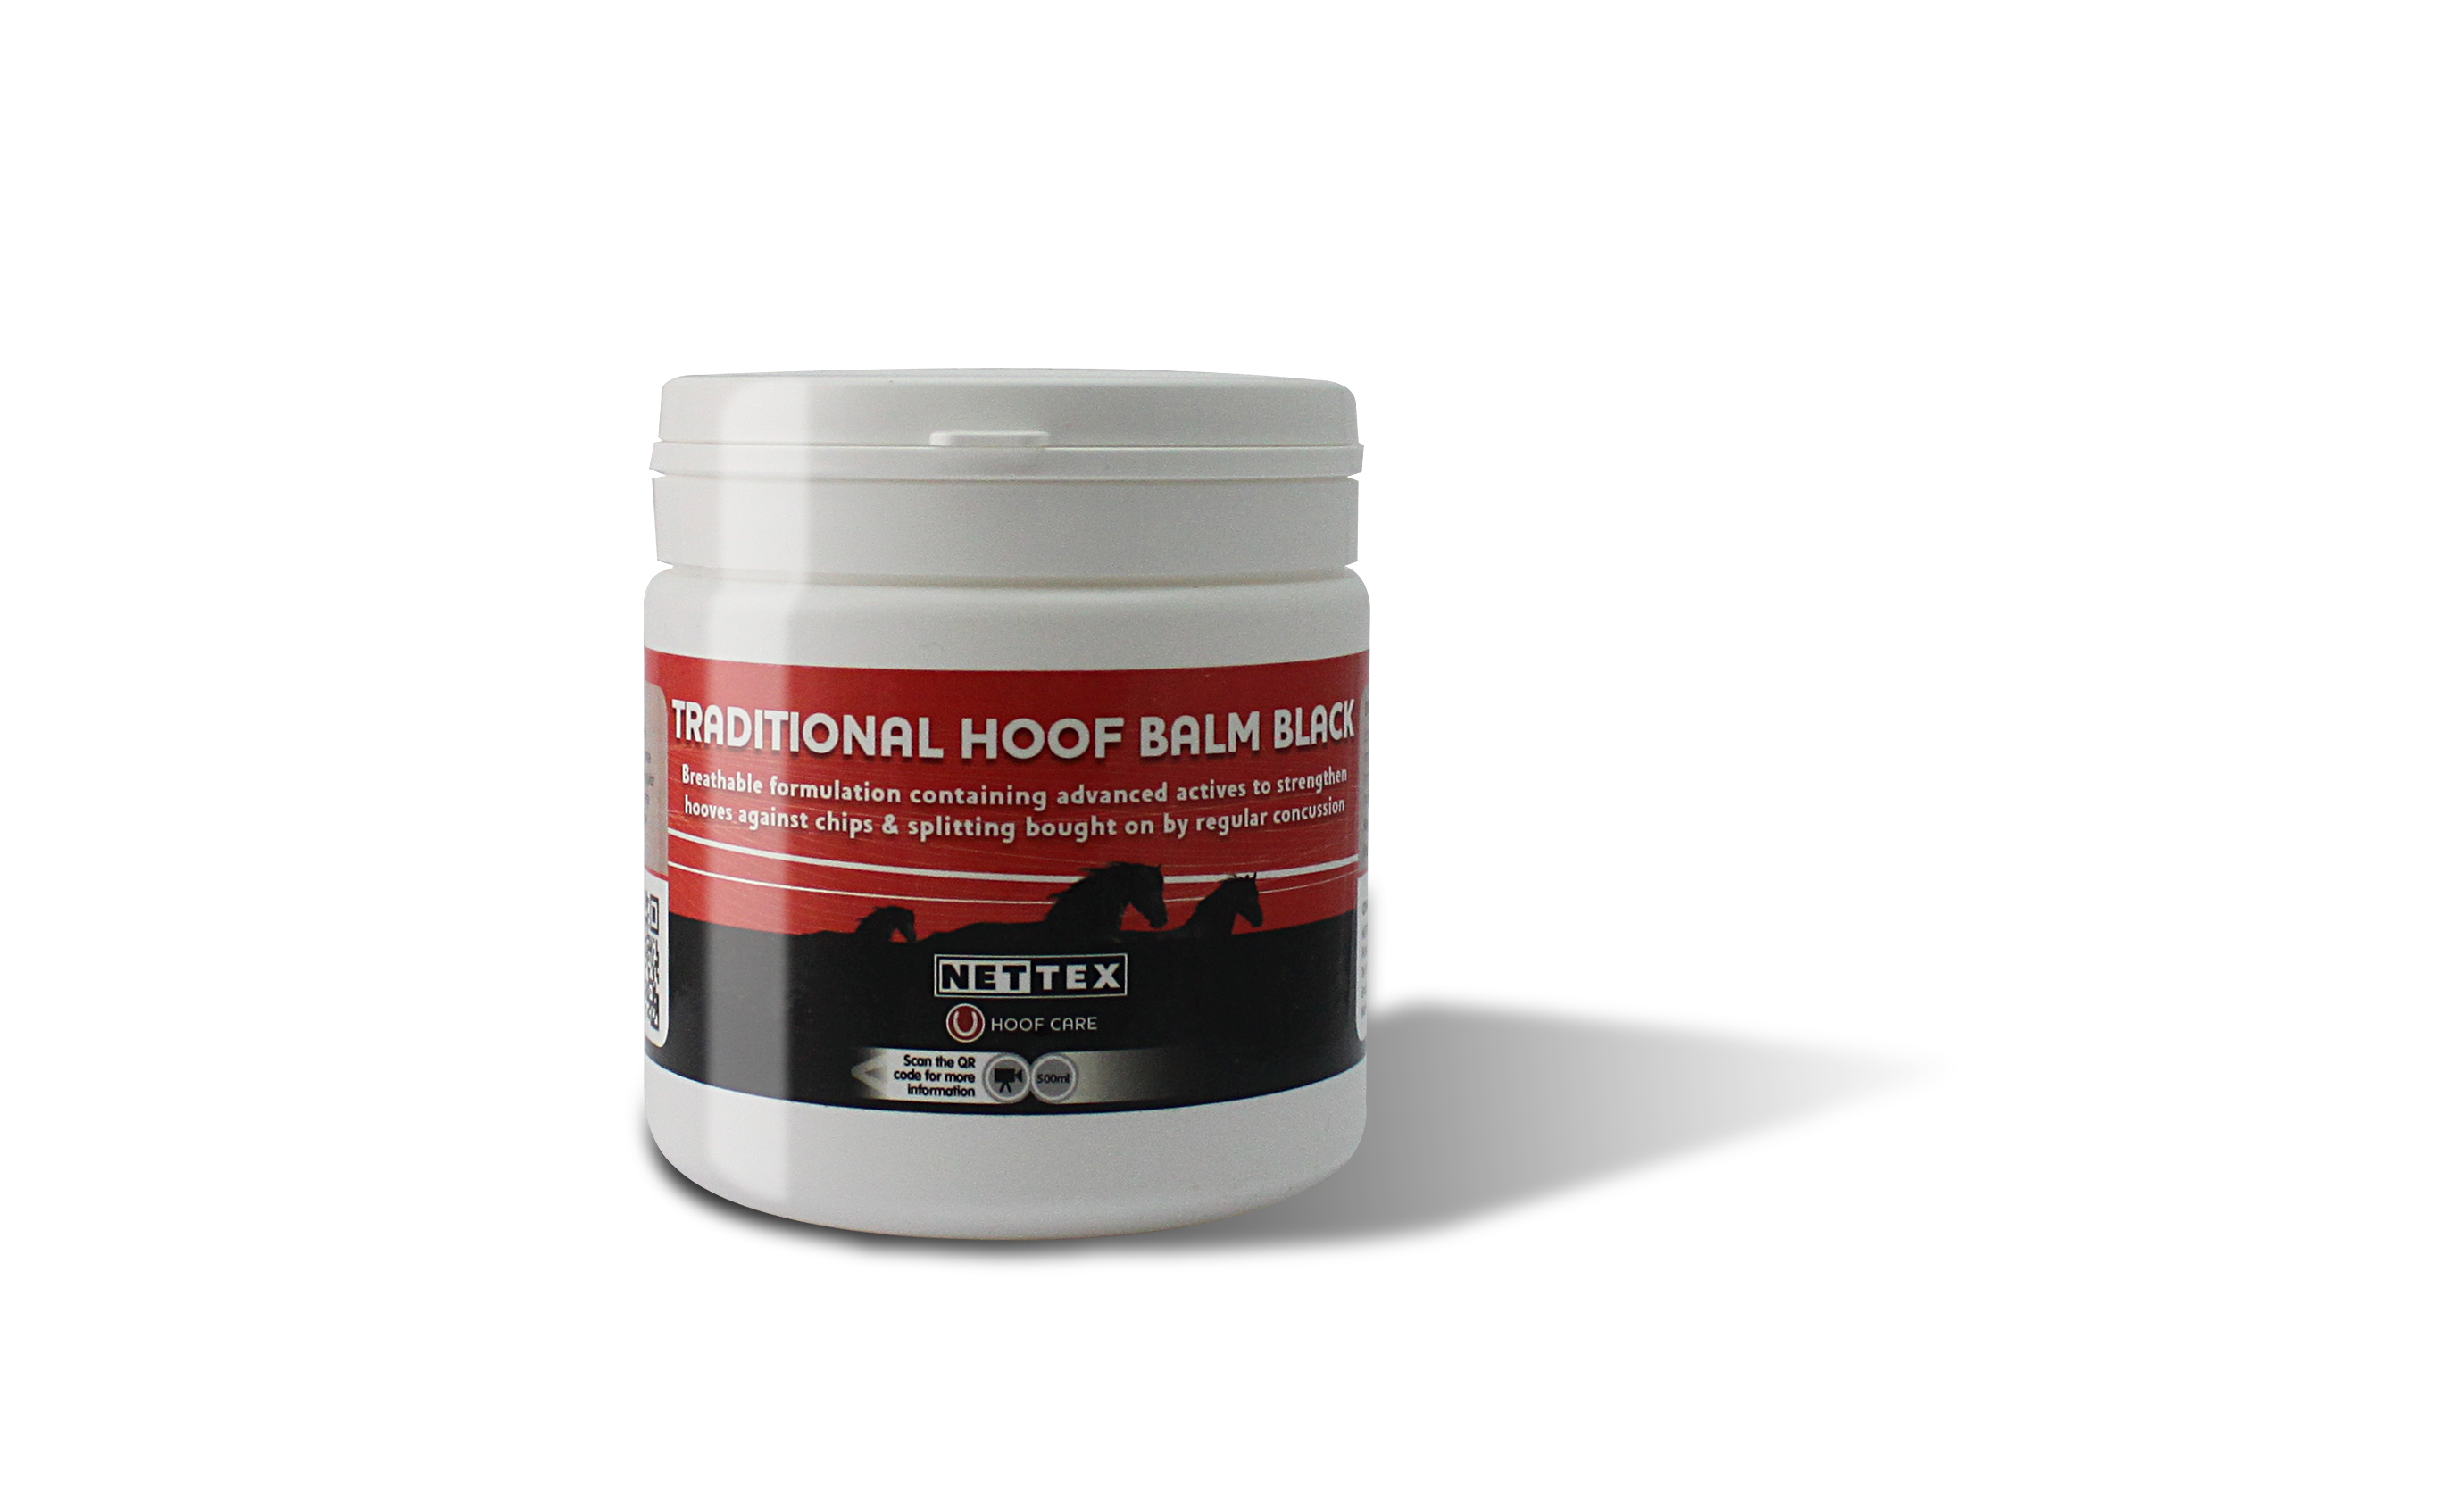 Net-Tex Traditional Hoof Balm for Horses